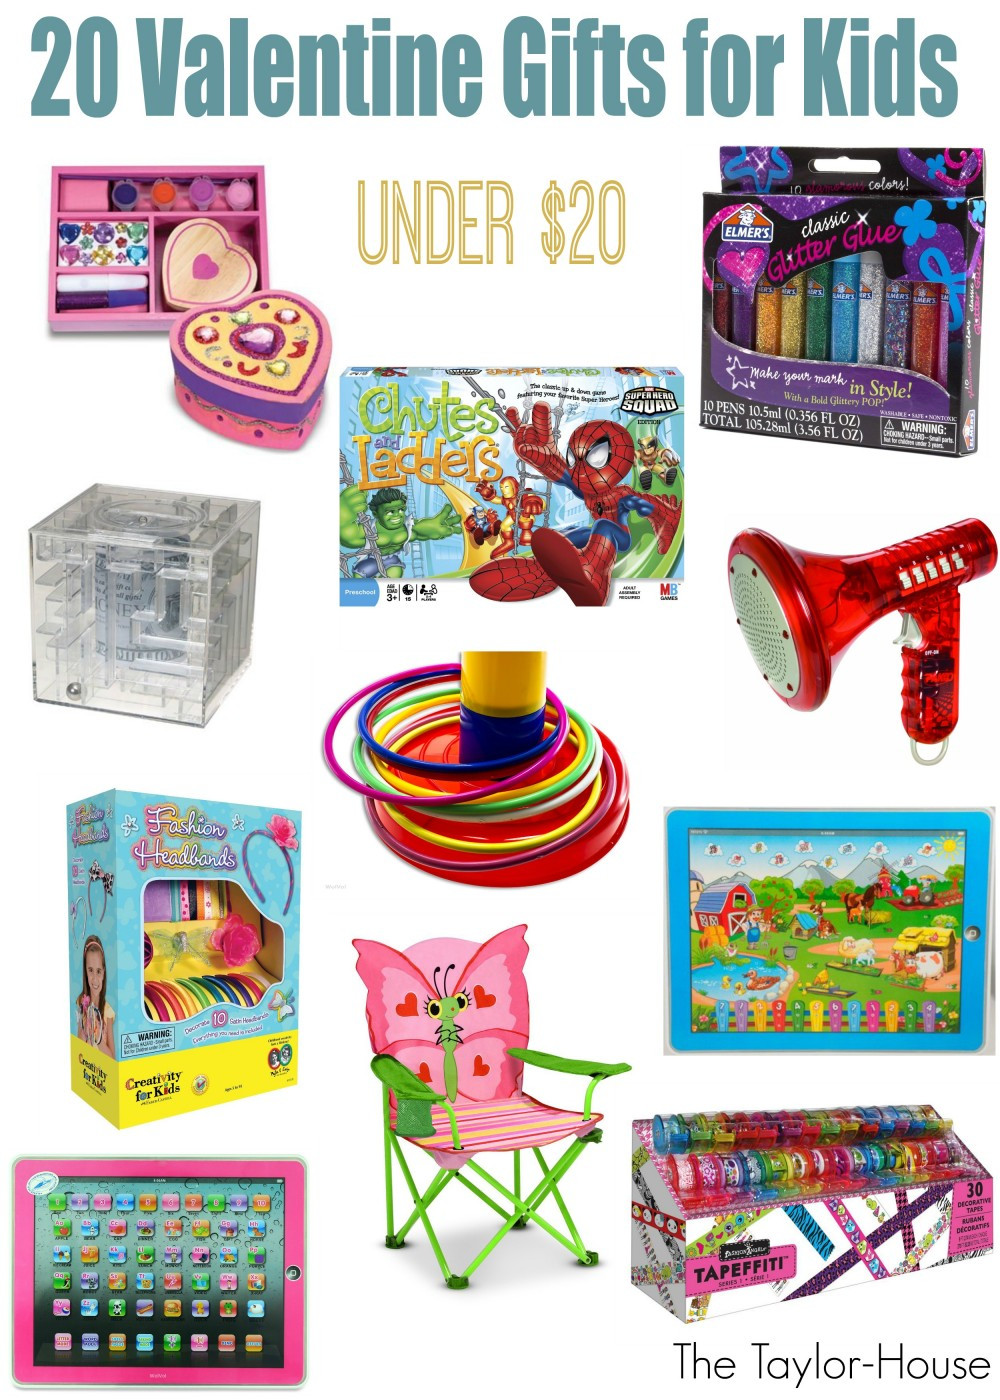 Best ideas about Gift Ideas For Children . Save or Pin Valentine Gift Ideas for Kids Now.